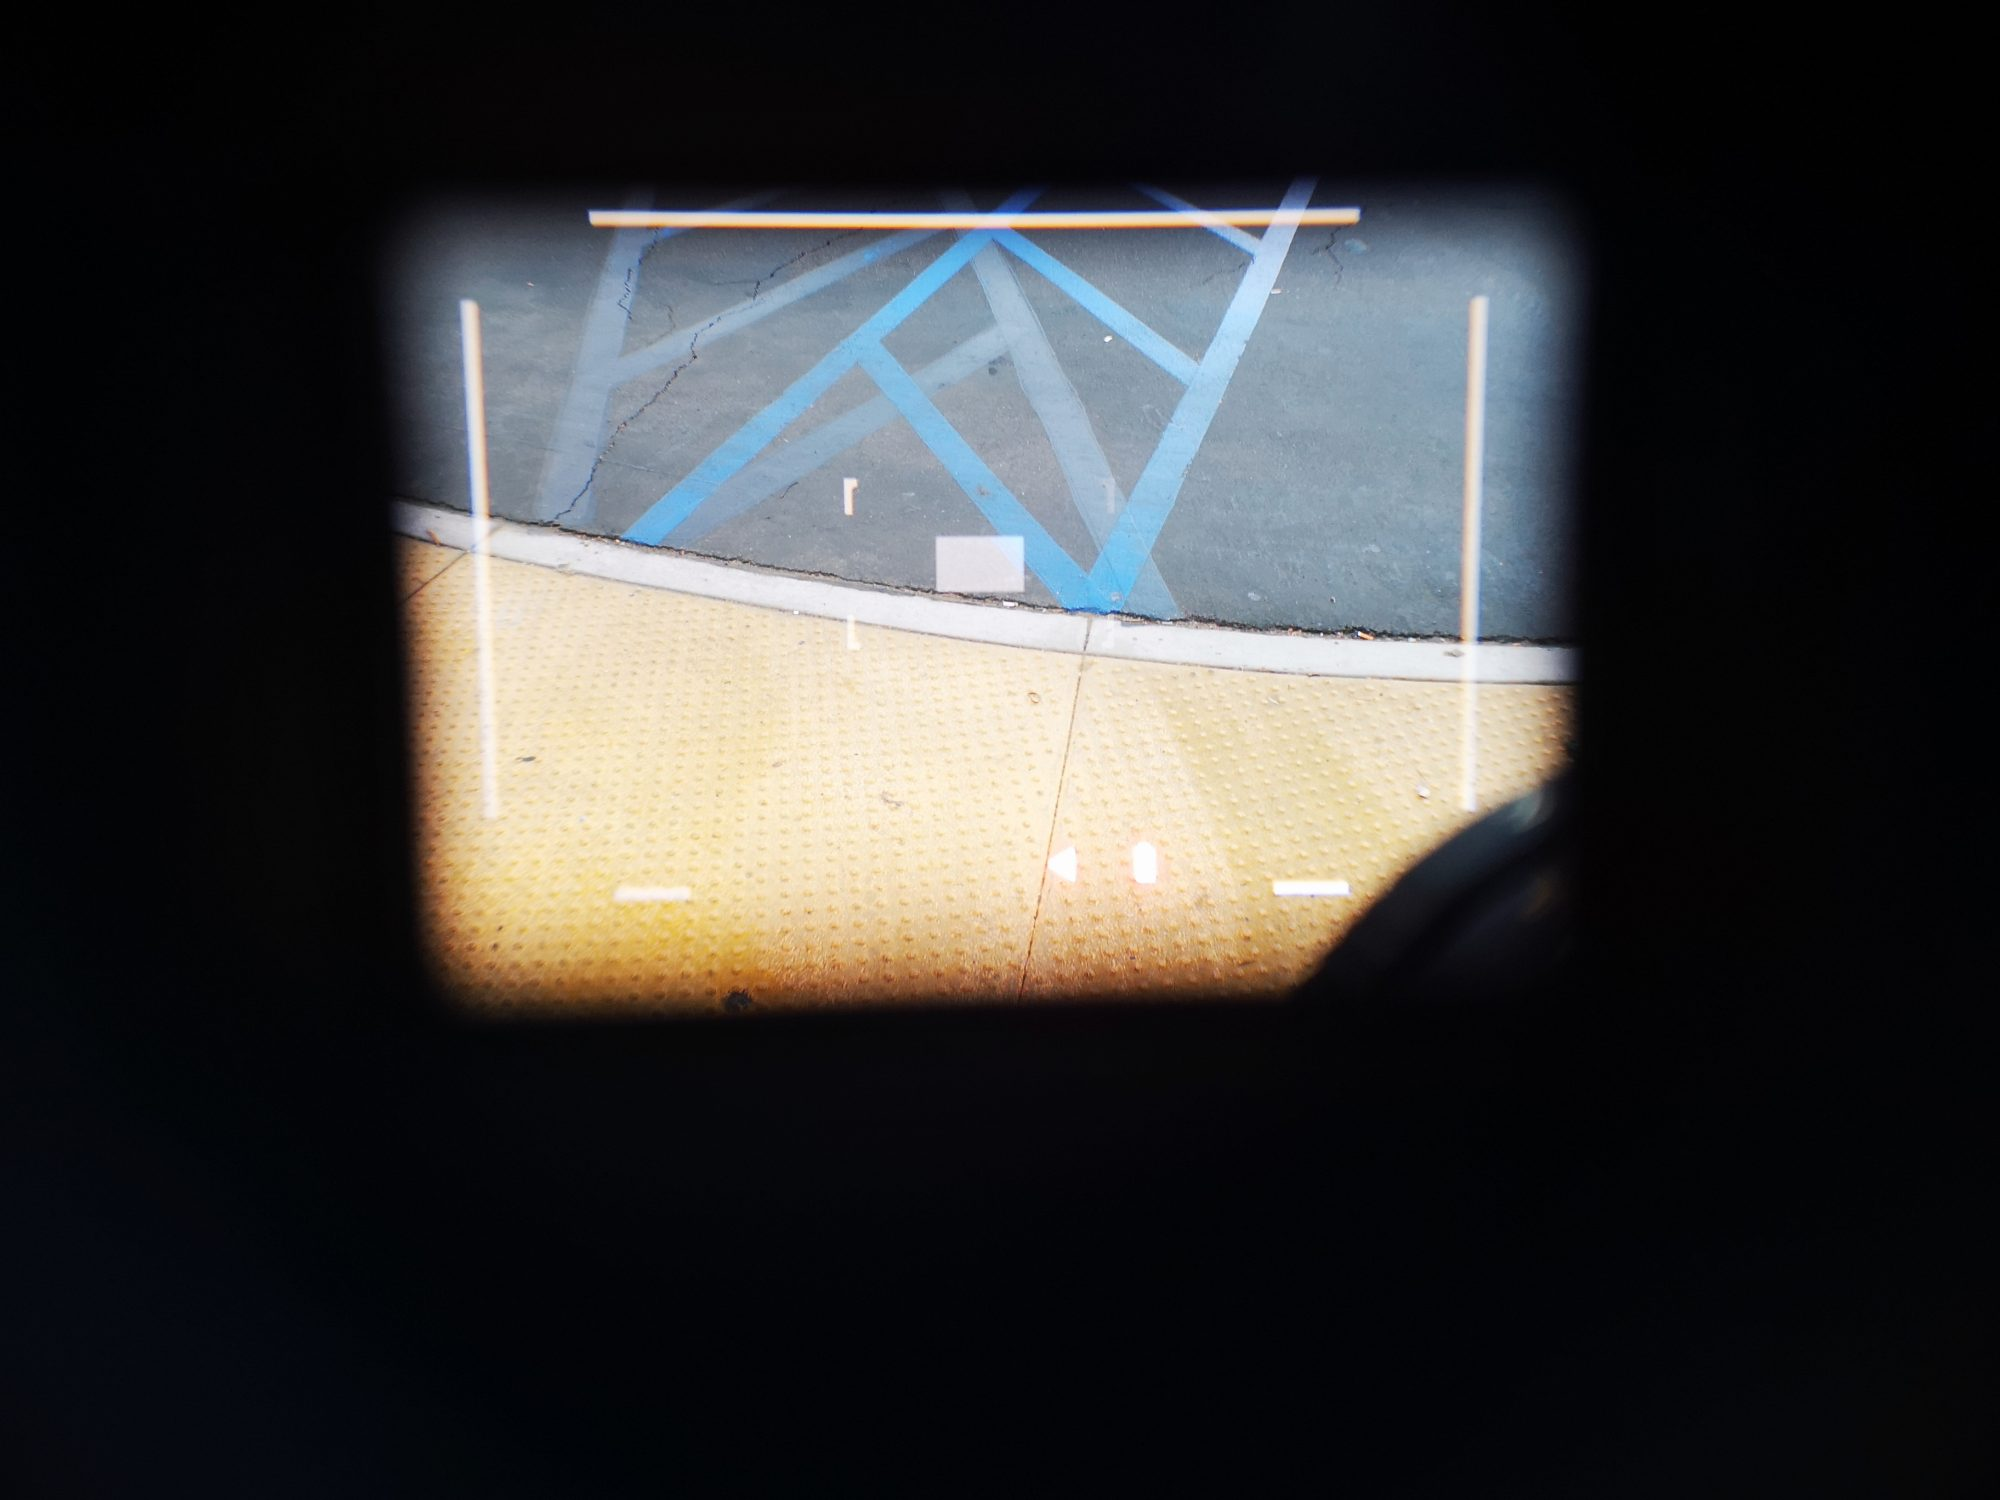 What the viewfinder lines look like when looking through a Leica